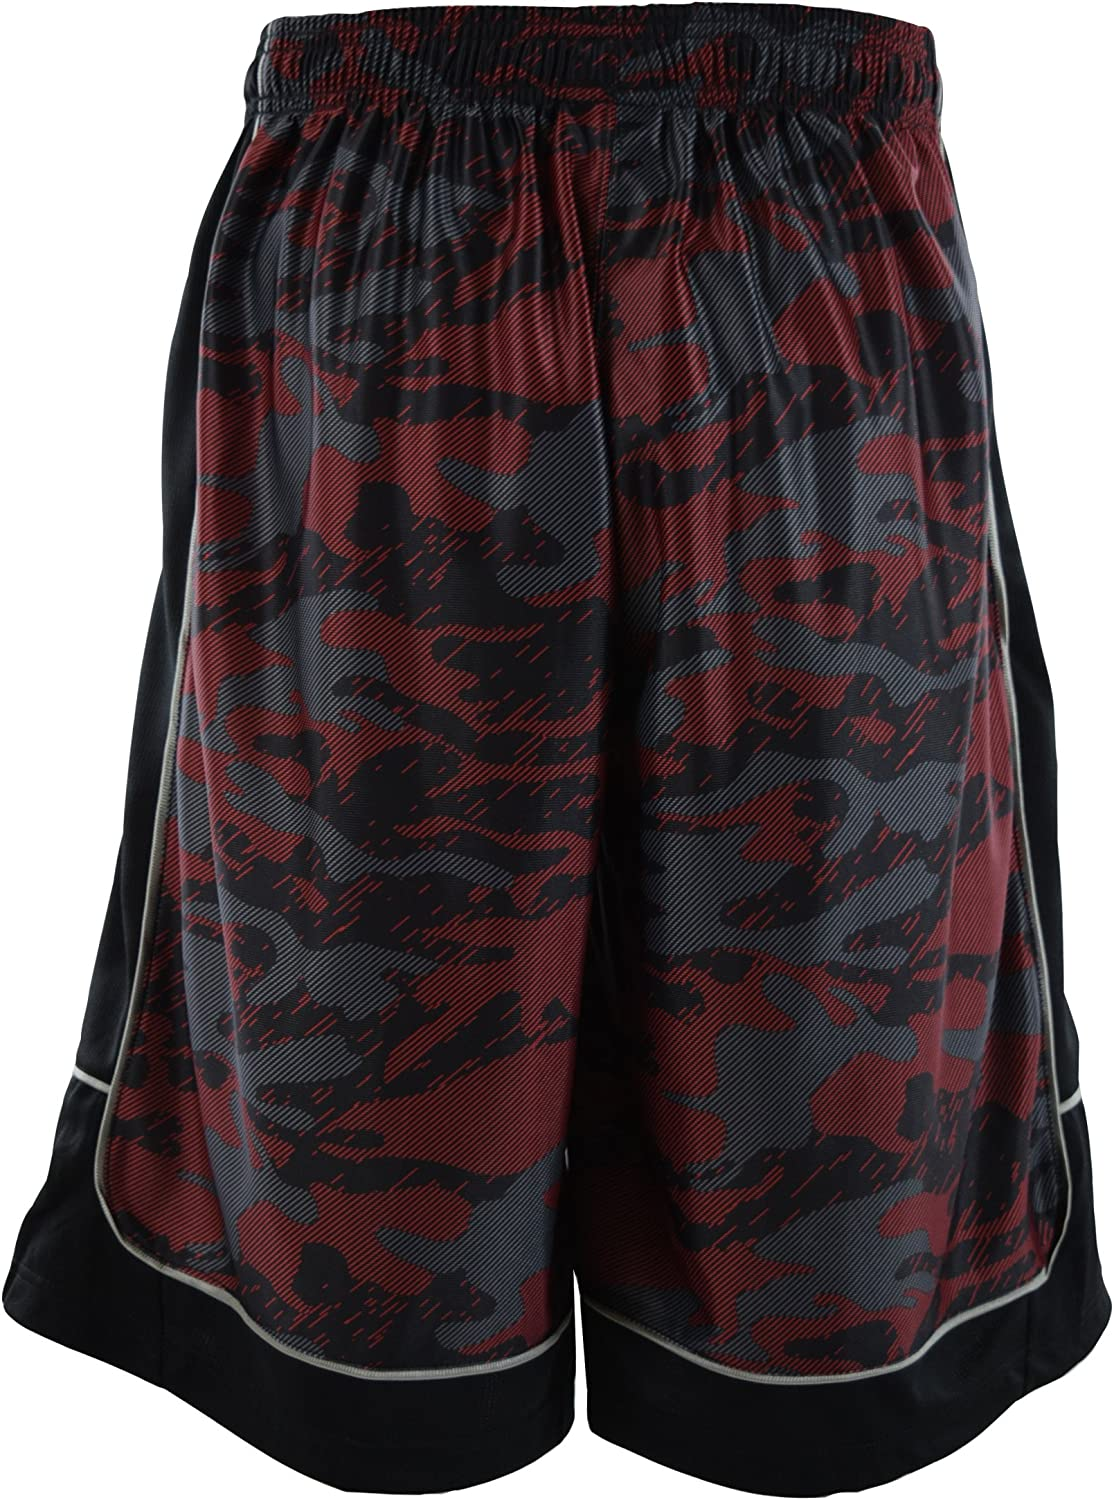 ChoiceApparel Mens Two Tone Training//Basketball Shorts with Pockets S up to 4XL